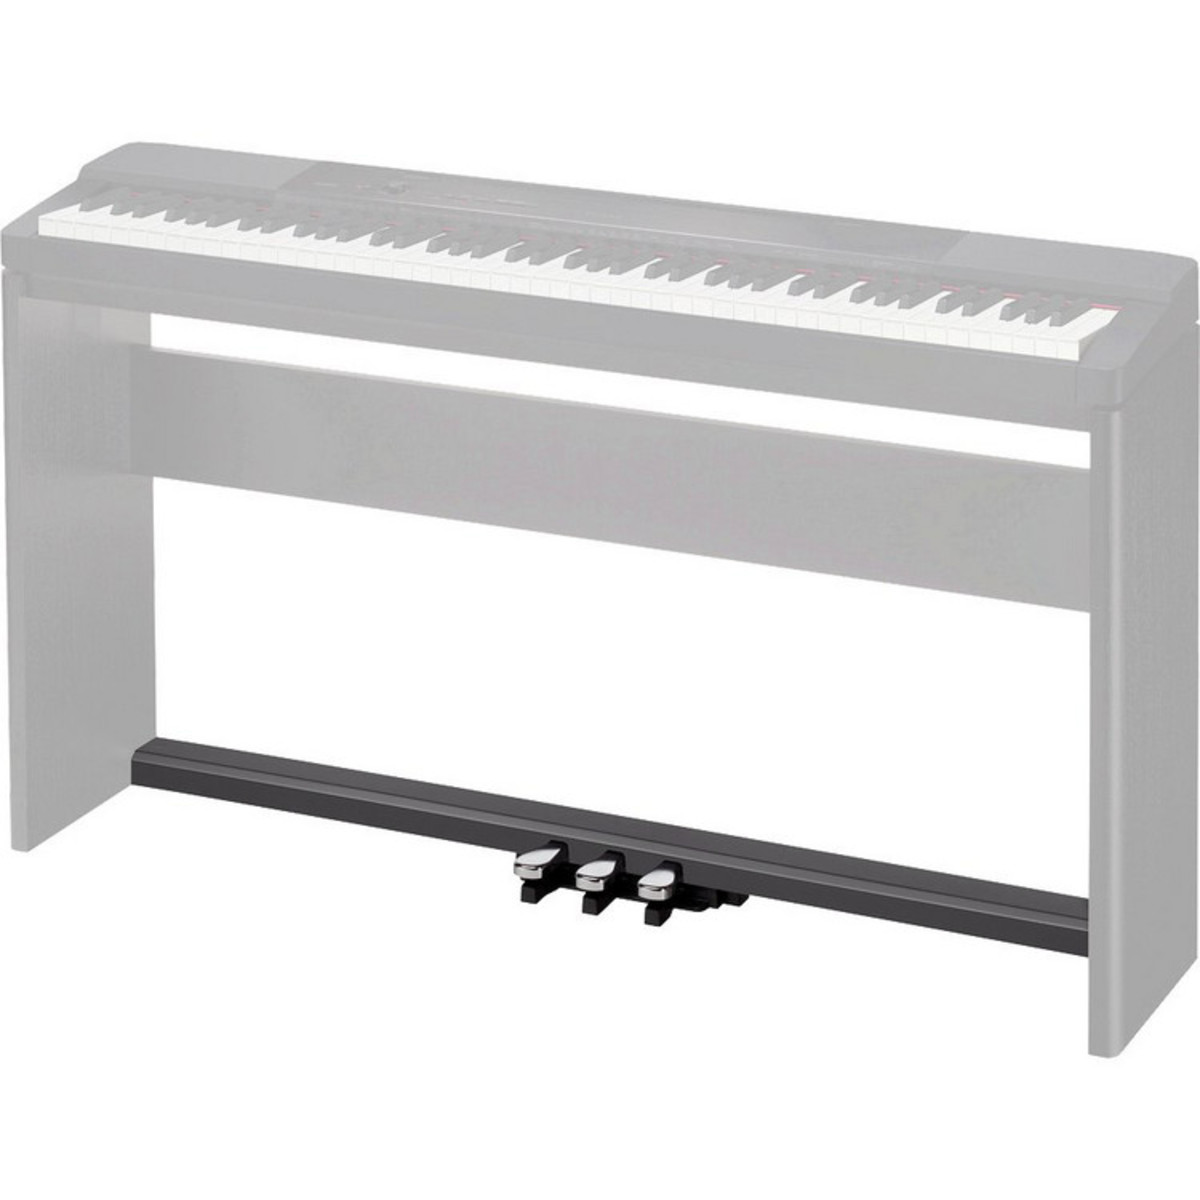 Image of Casio SP-33 Pedal Board for Privia PX-150 & PX-350 Digital Pianos